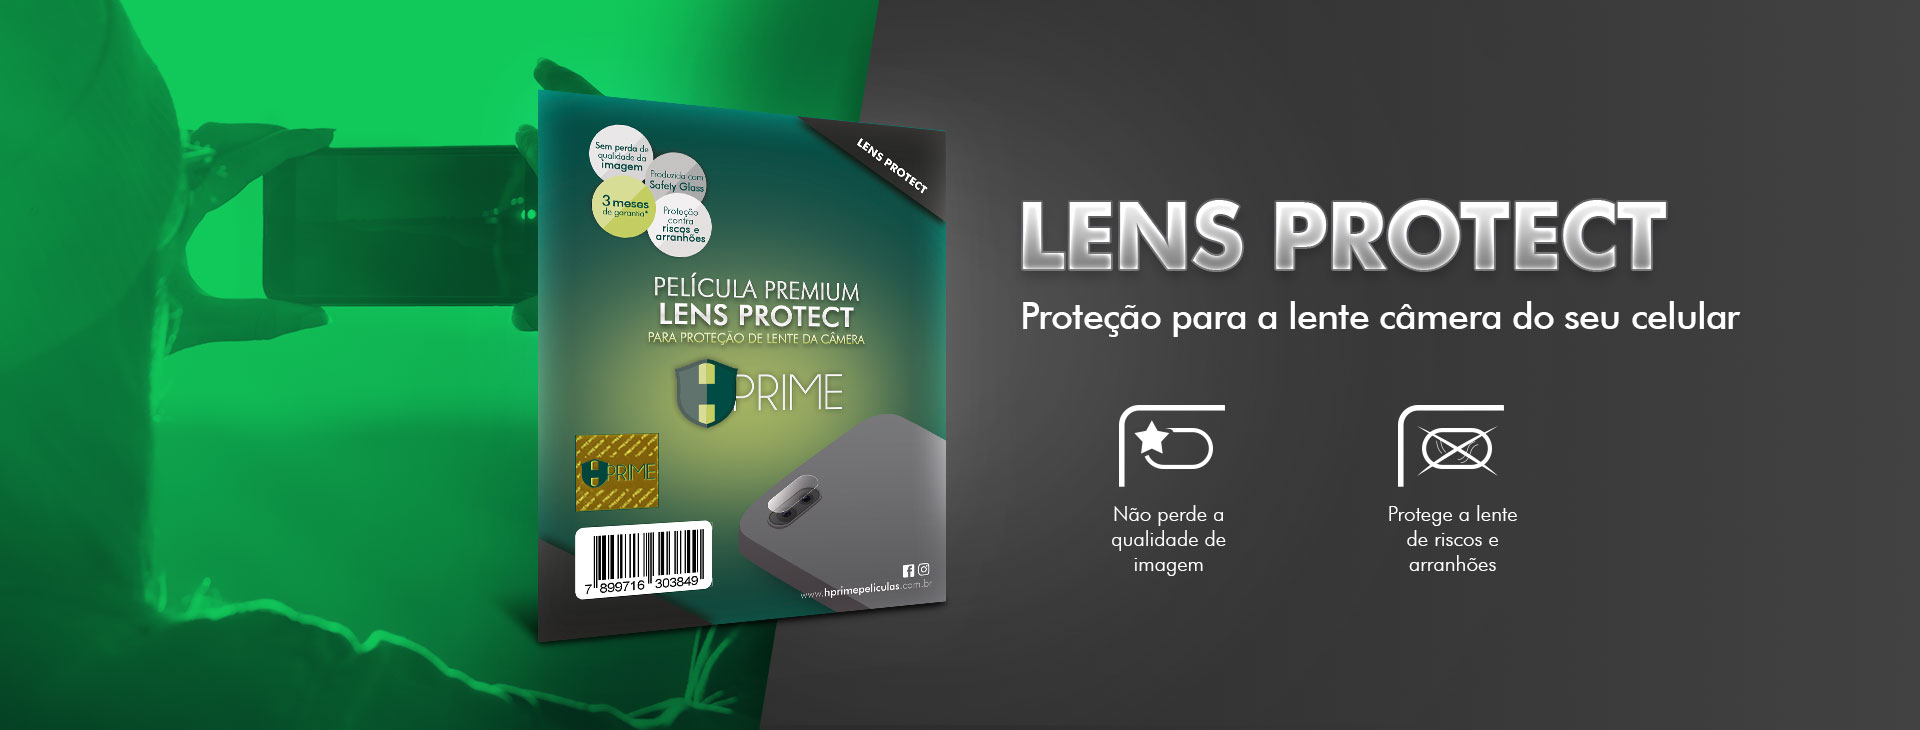 LENS PROTECT